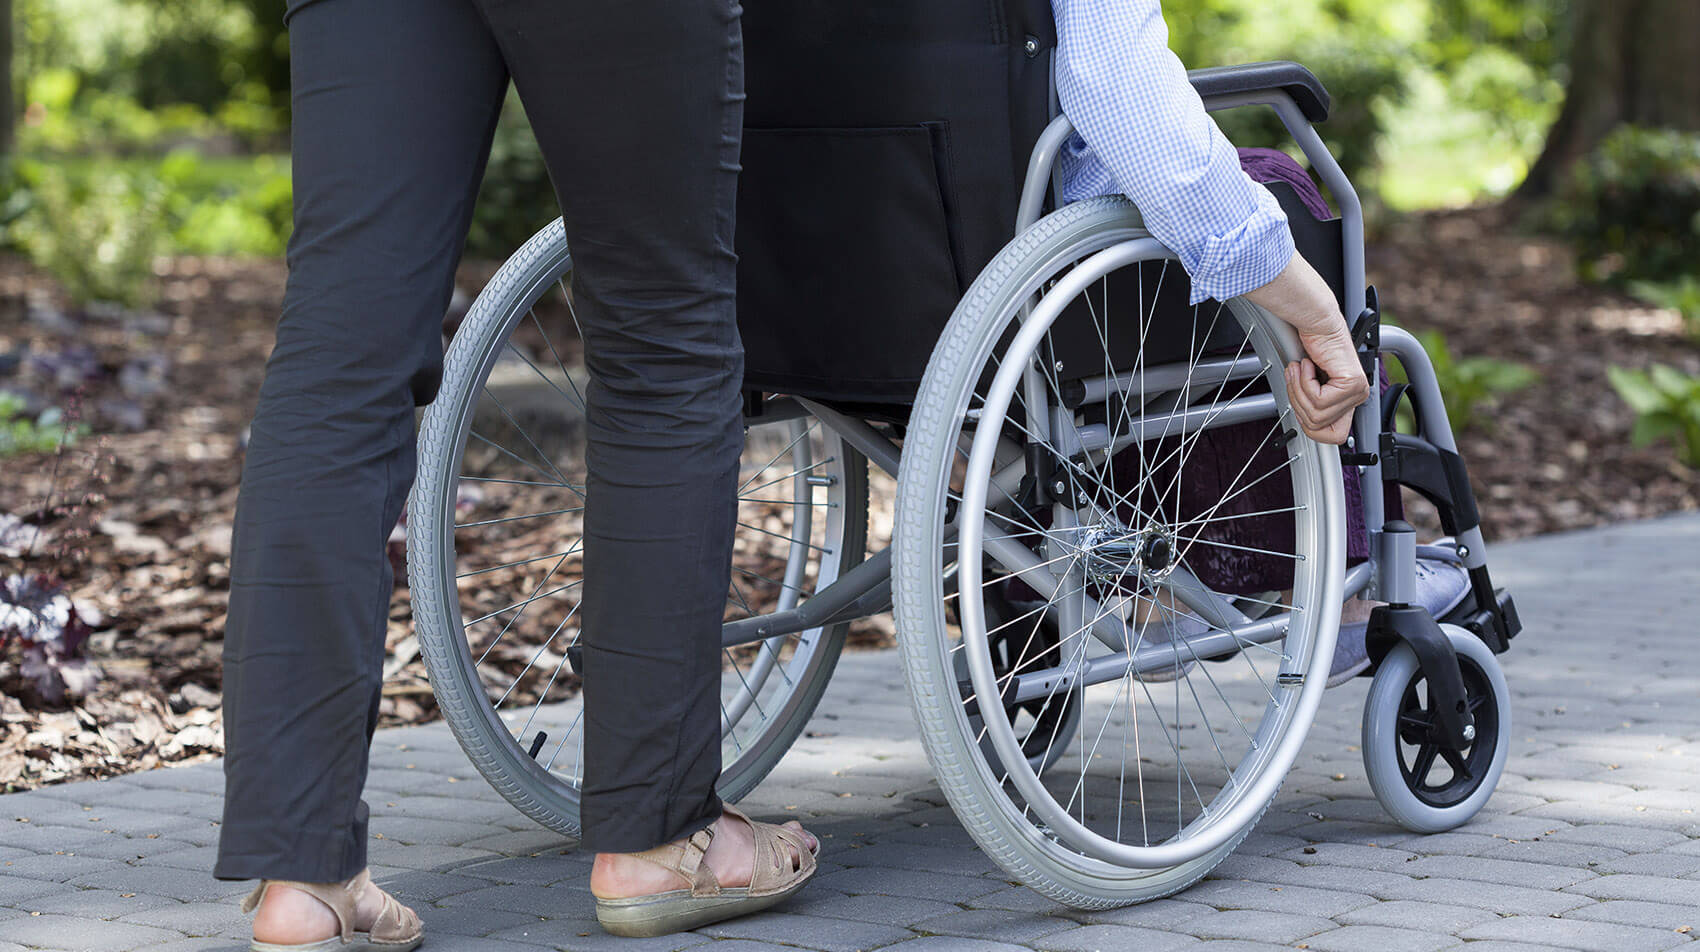 Disability support policy